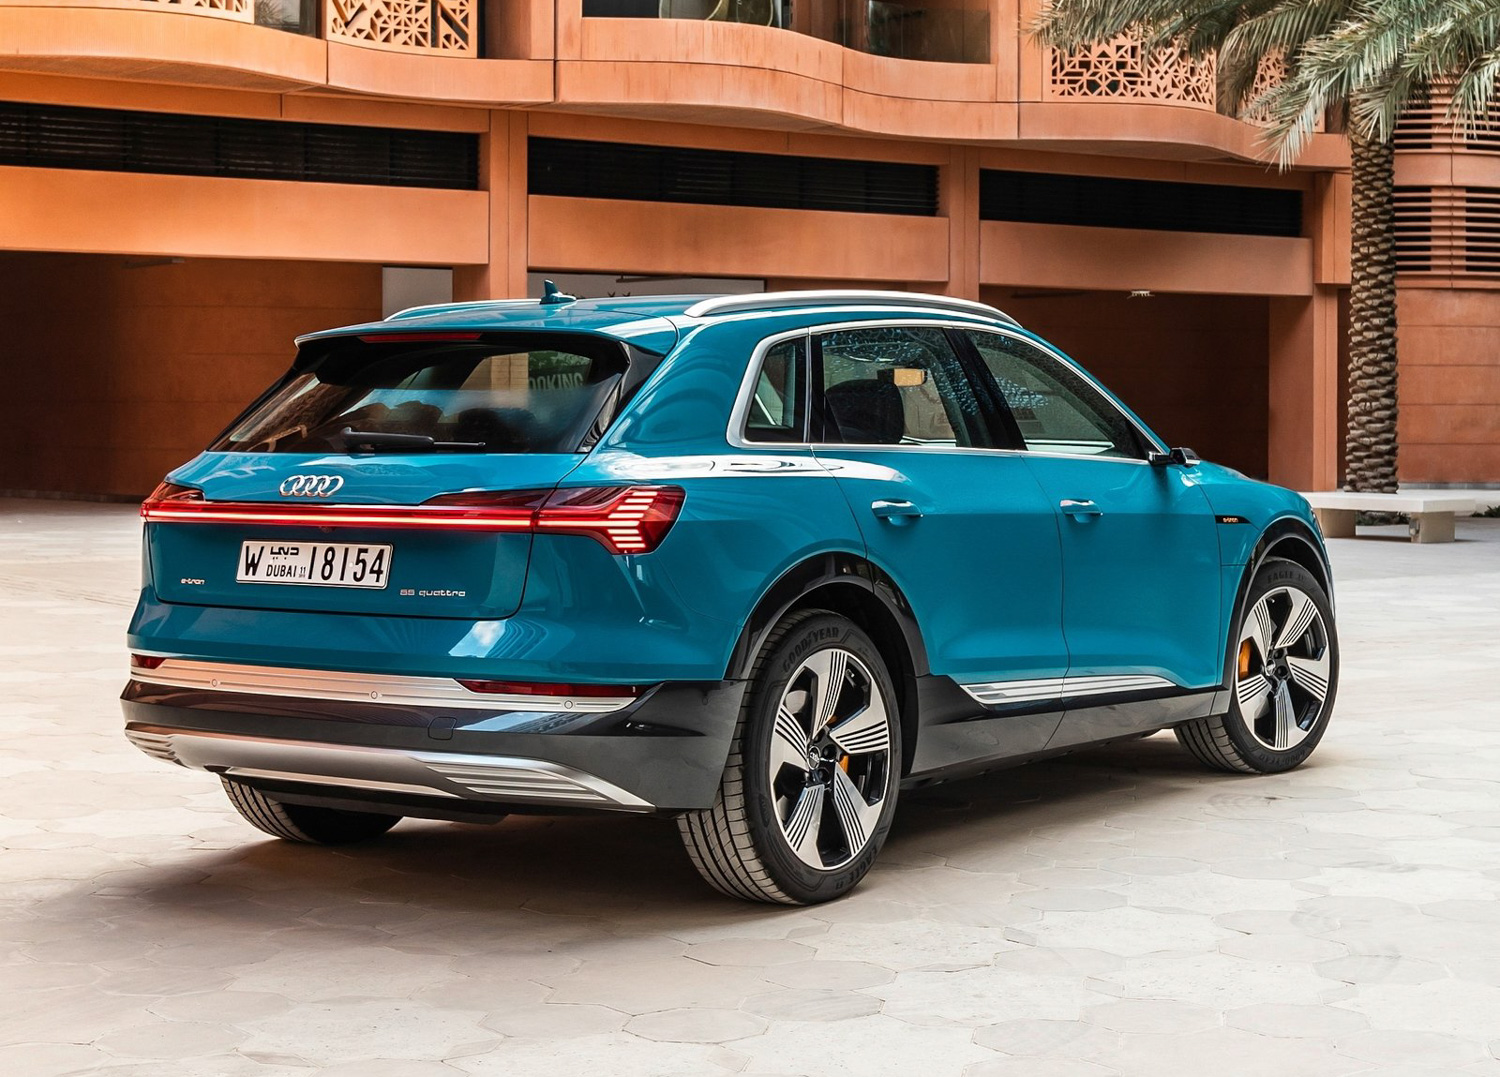 2020 Audi e-tron 3/4 rear blue